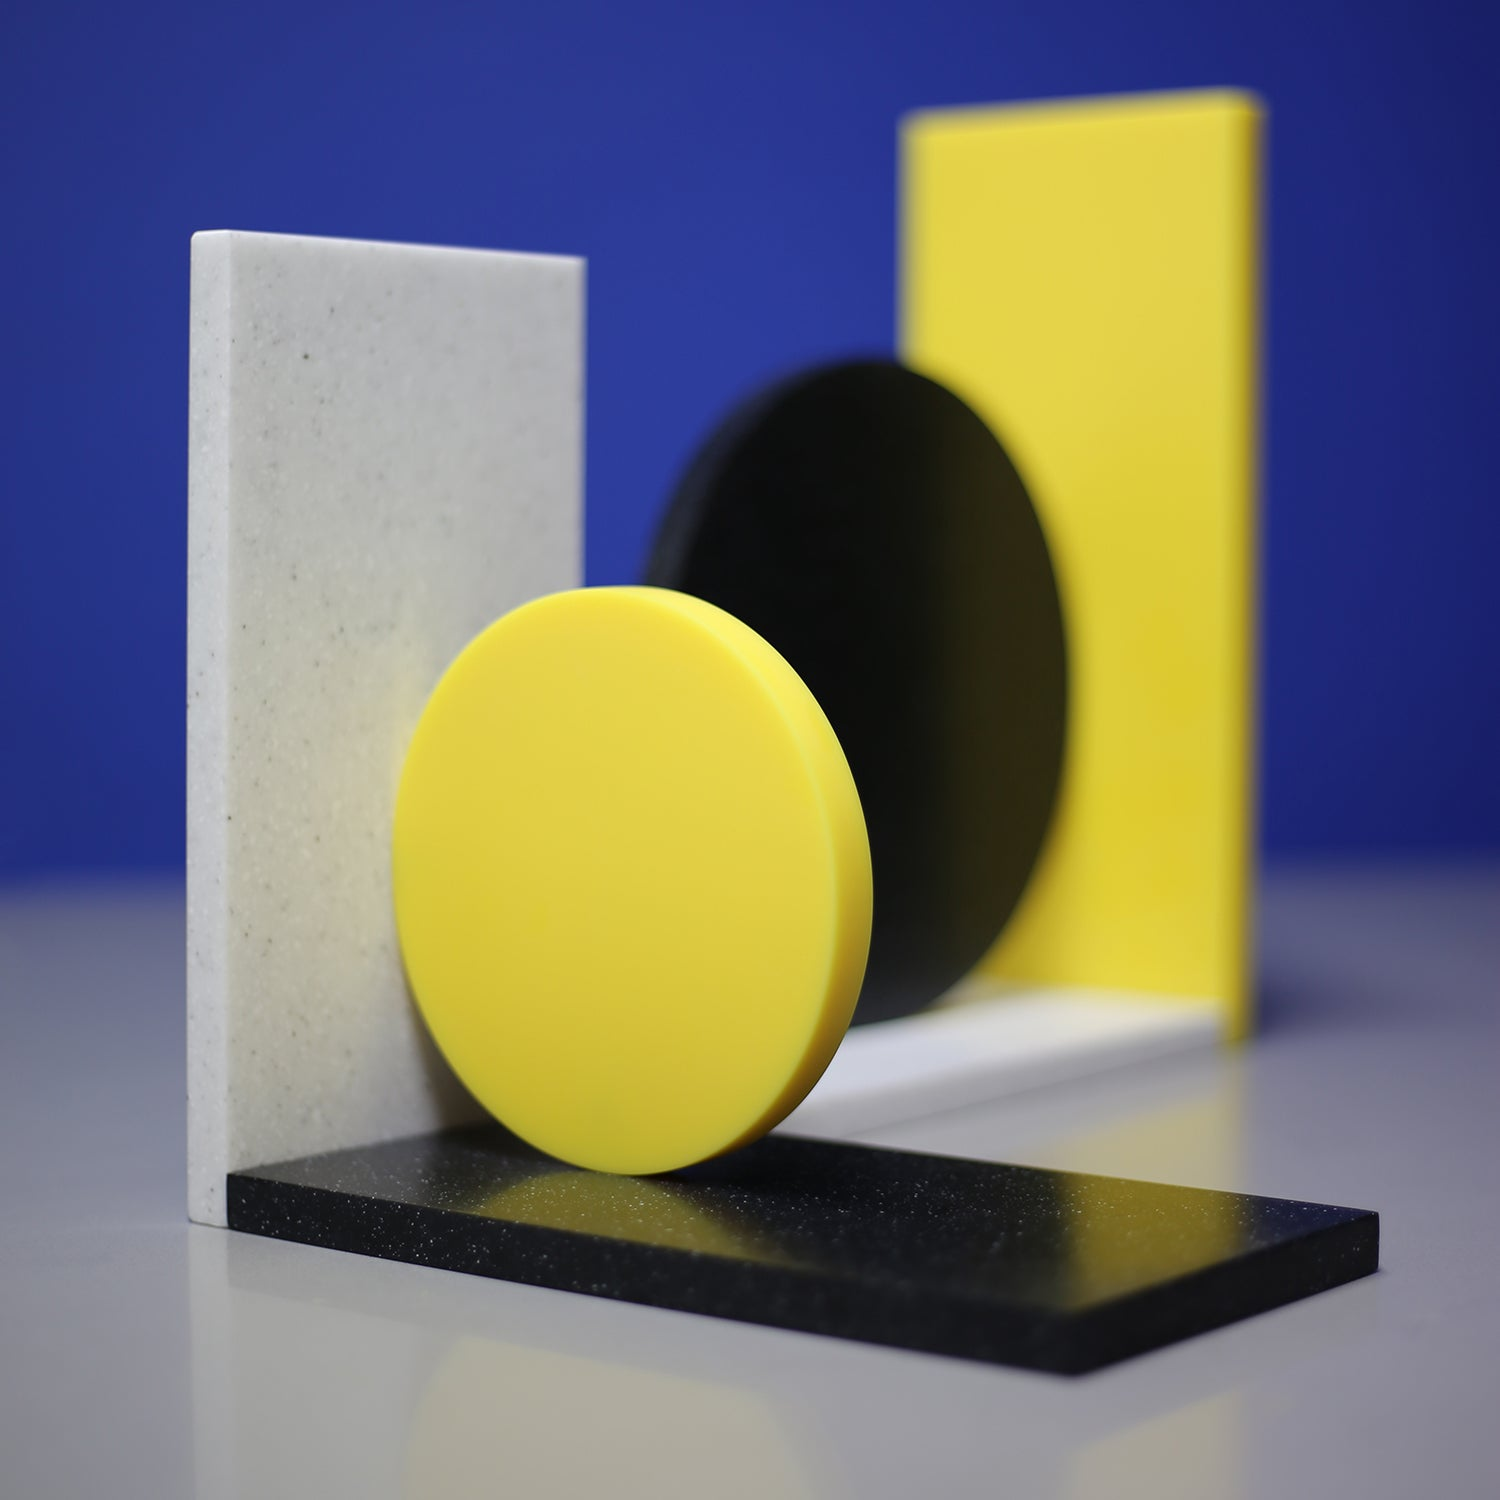 Corian Dot Bookends made to order. Asymmetrical design makes each end different. Yellow corian, black speckled corian, light grey speckled corian.  A colourful addition to any shelf!